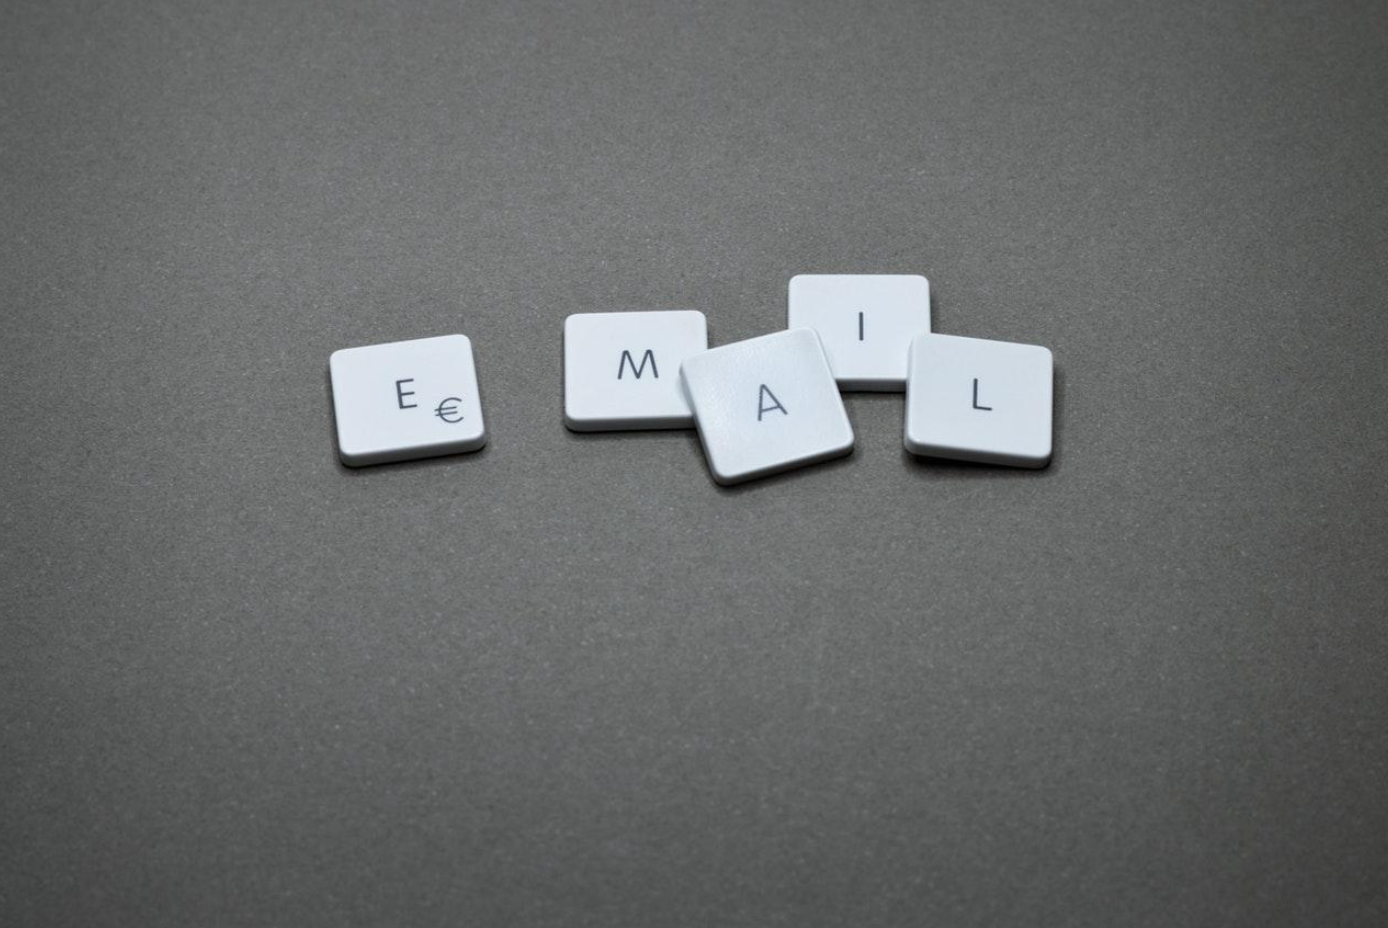 """""""Email"""" spelled in tiles on a gray surface; image by Miguel Á. Padriñán, via Pexels.com."""